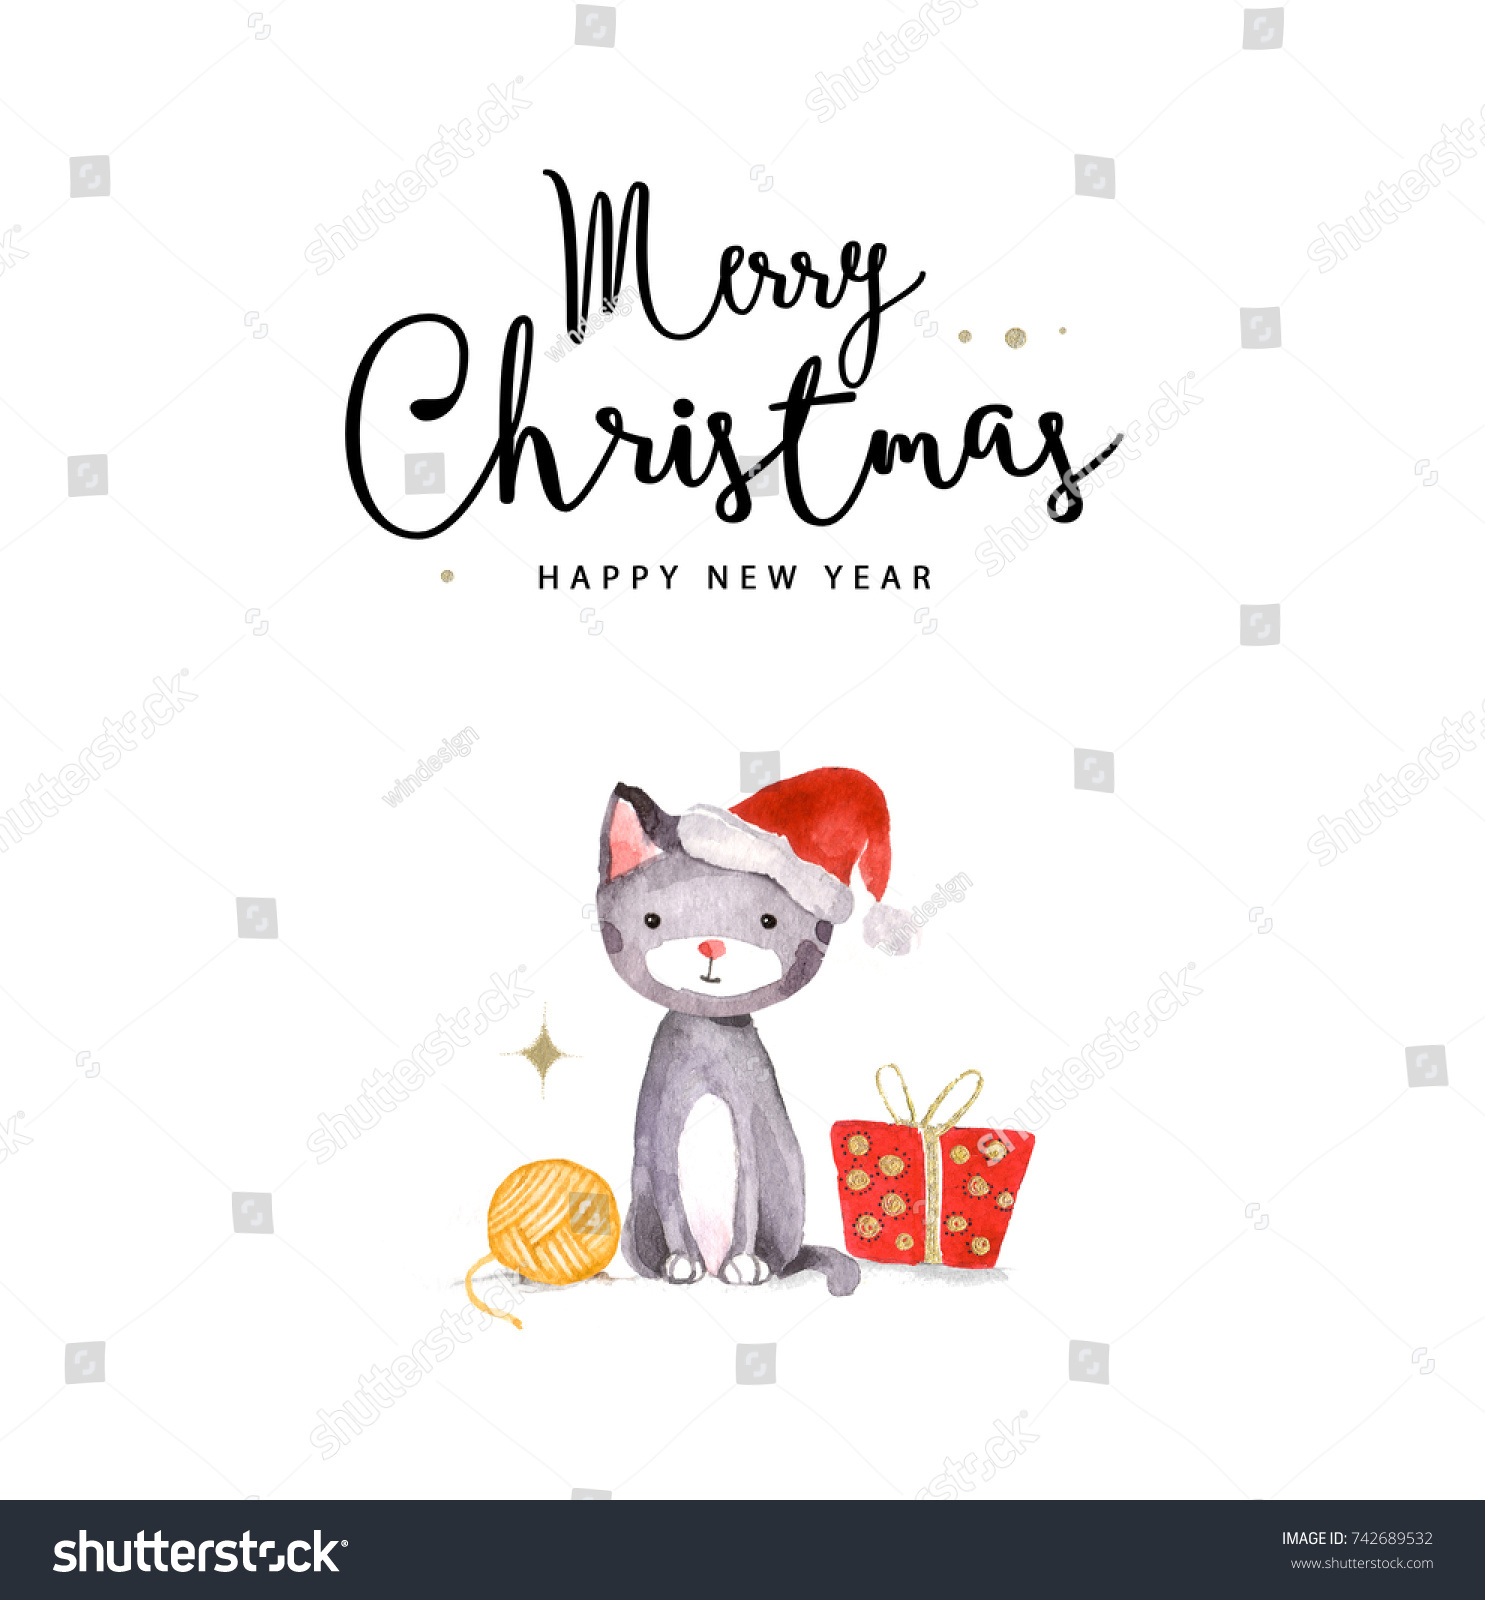 merry christmas and happy new year card watercolor illustration of cat